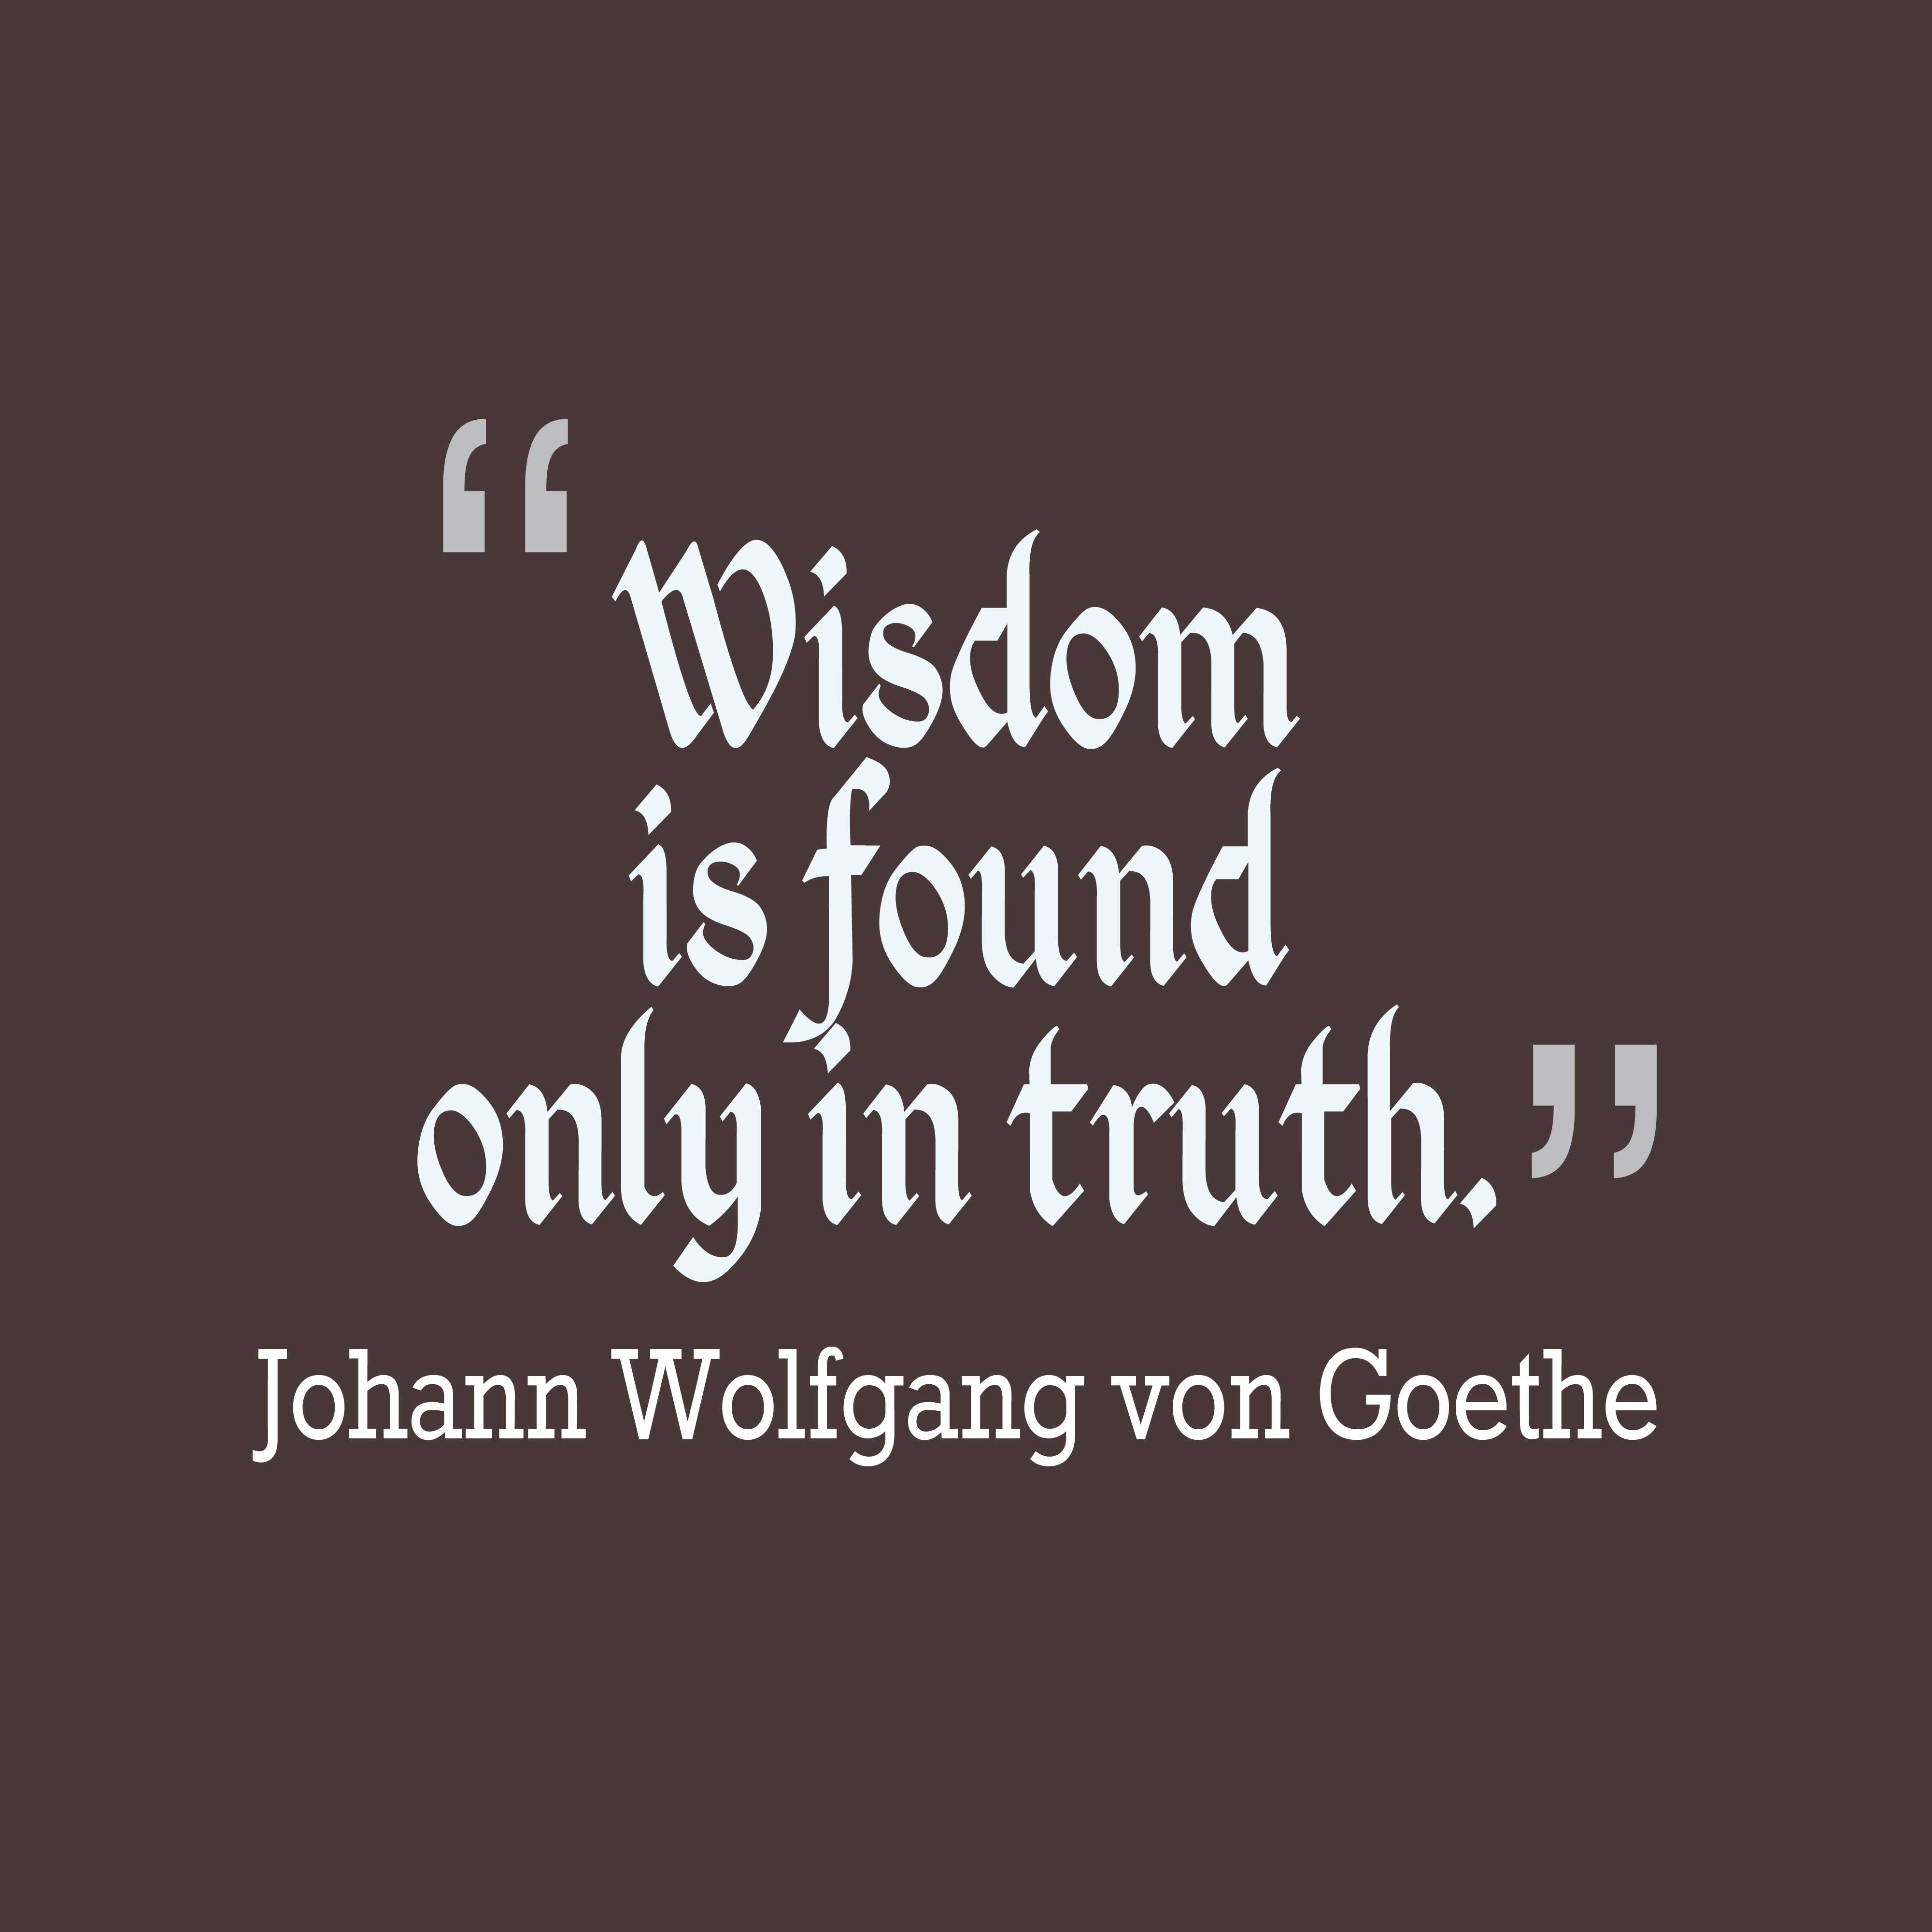 Download Slam Quotes About Truth: Picture » Johann Wolfgang Von Goethe Quote About Wisdom